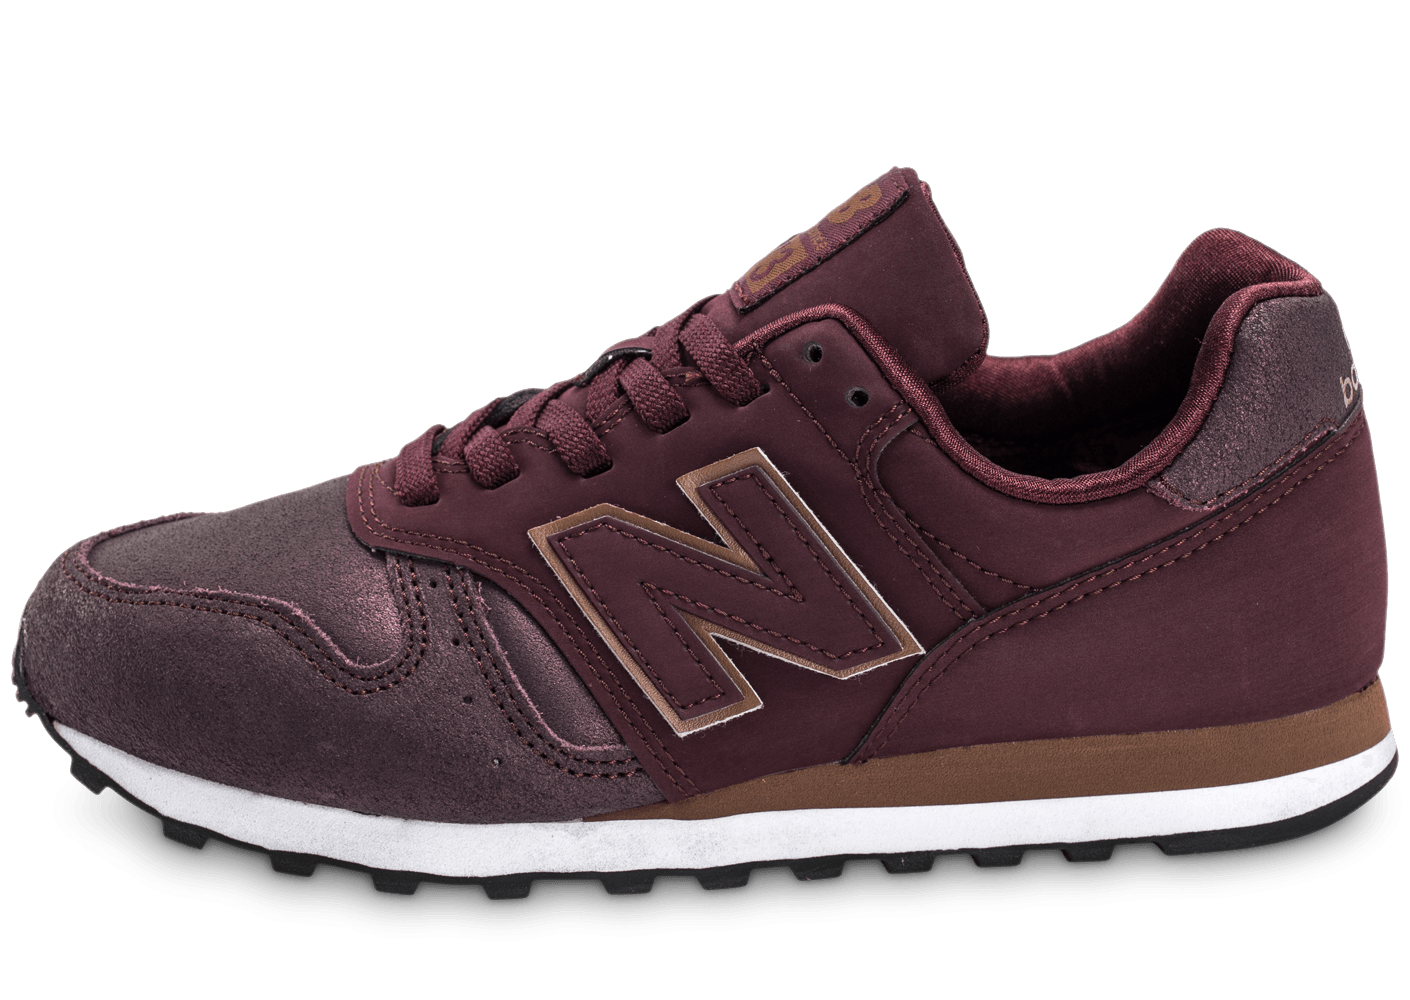 chaussures new balance a bordeaux